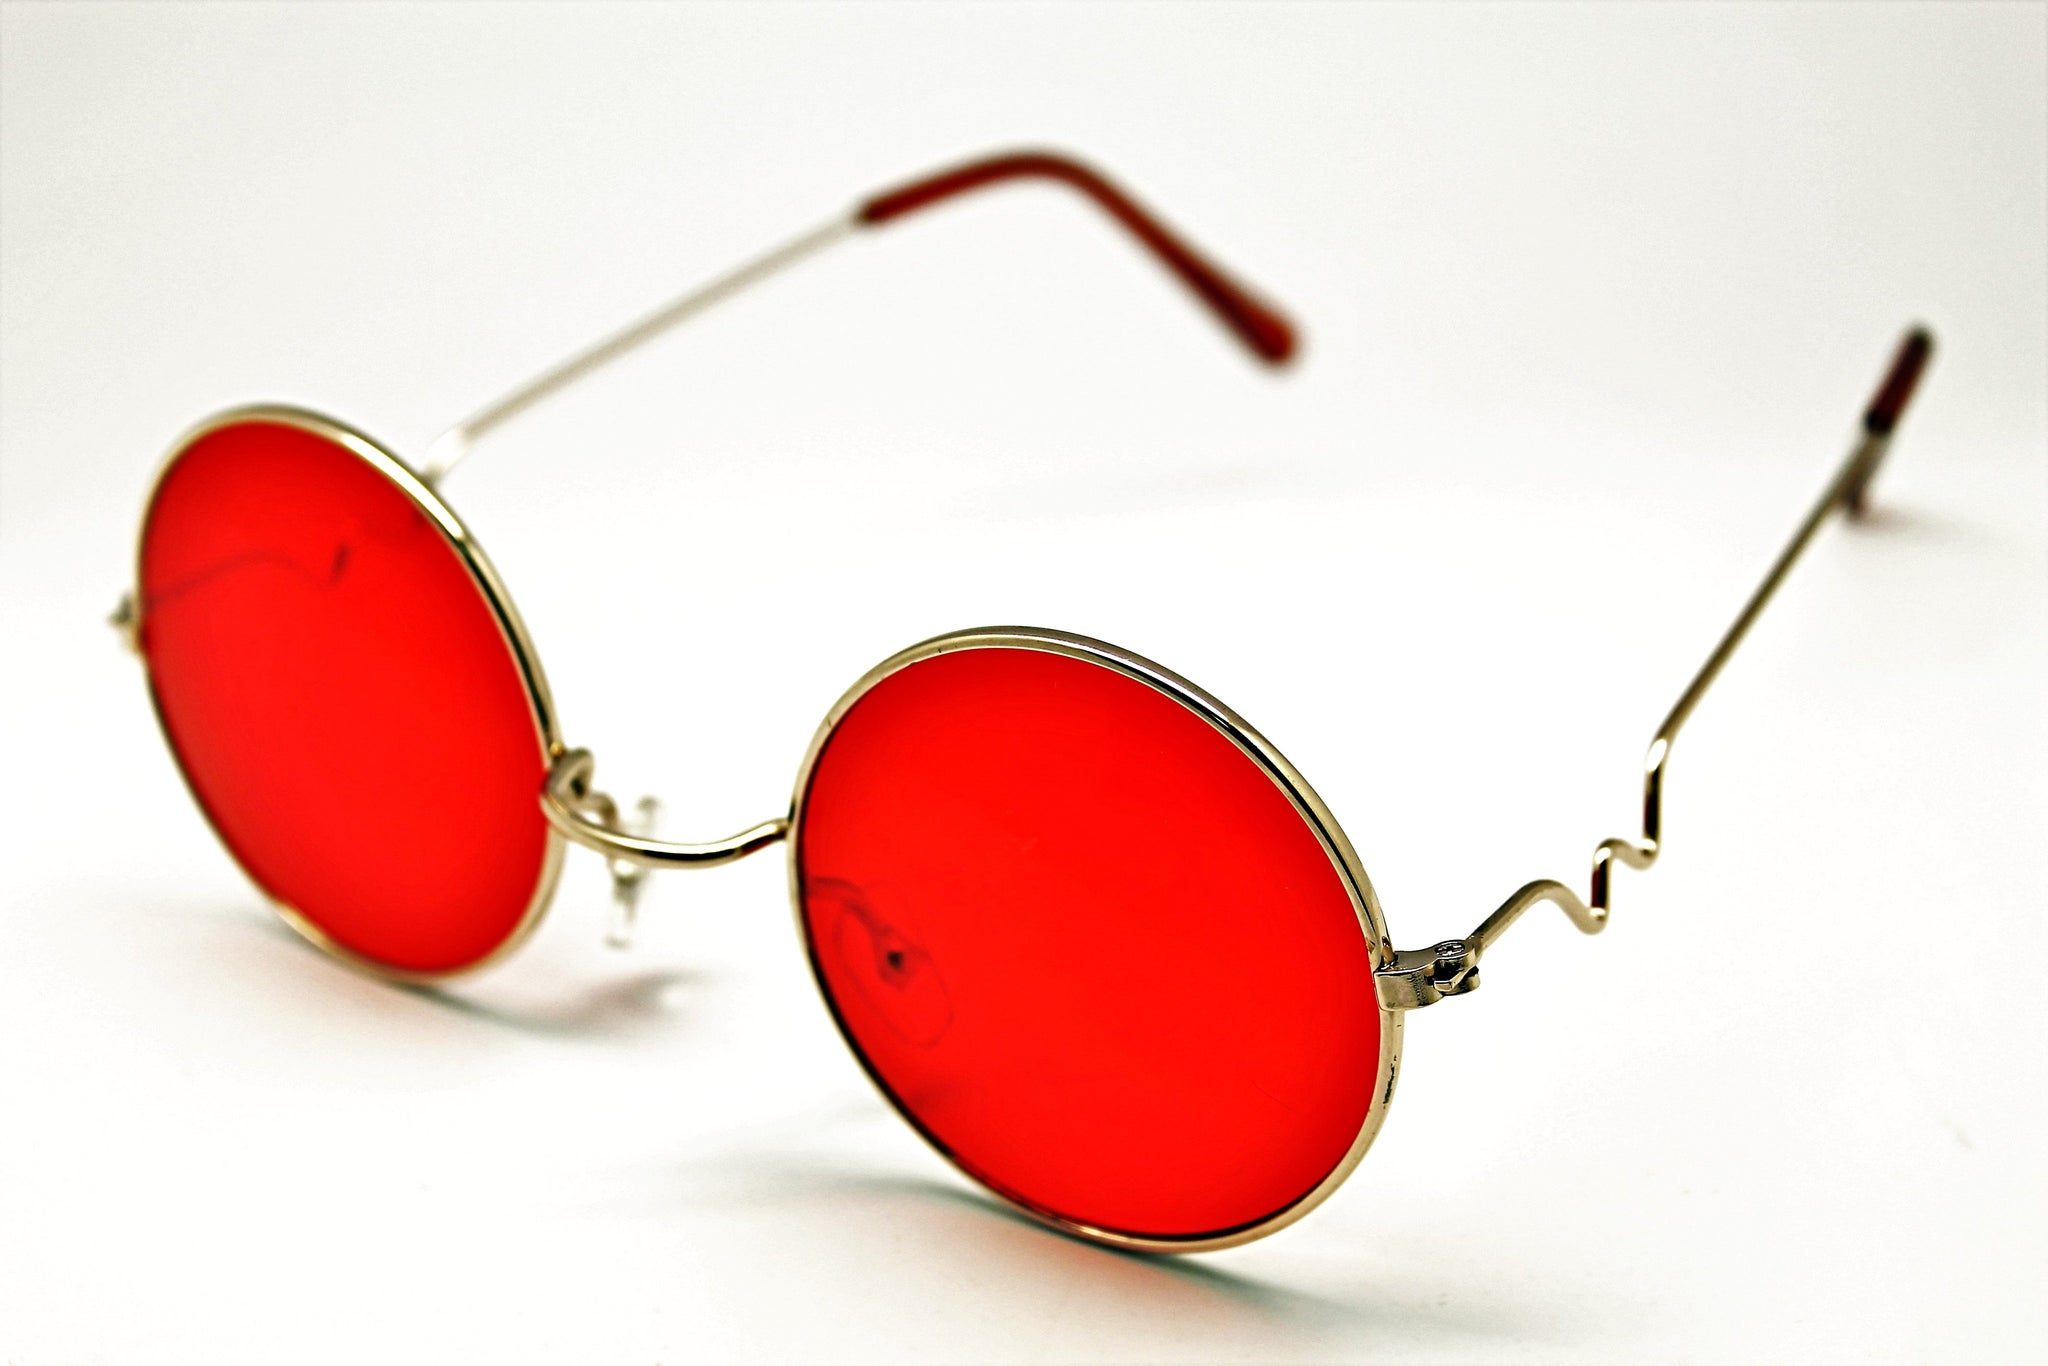 a0b0a71d086 Lennon style sunglasses with red lenses and gold frames